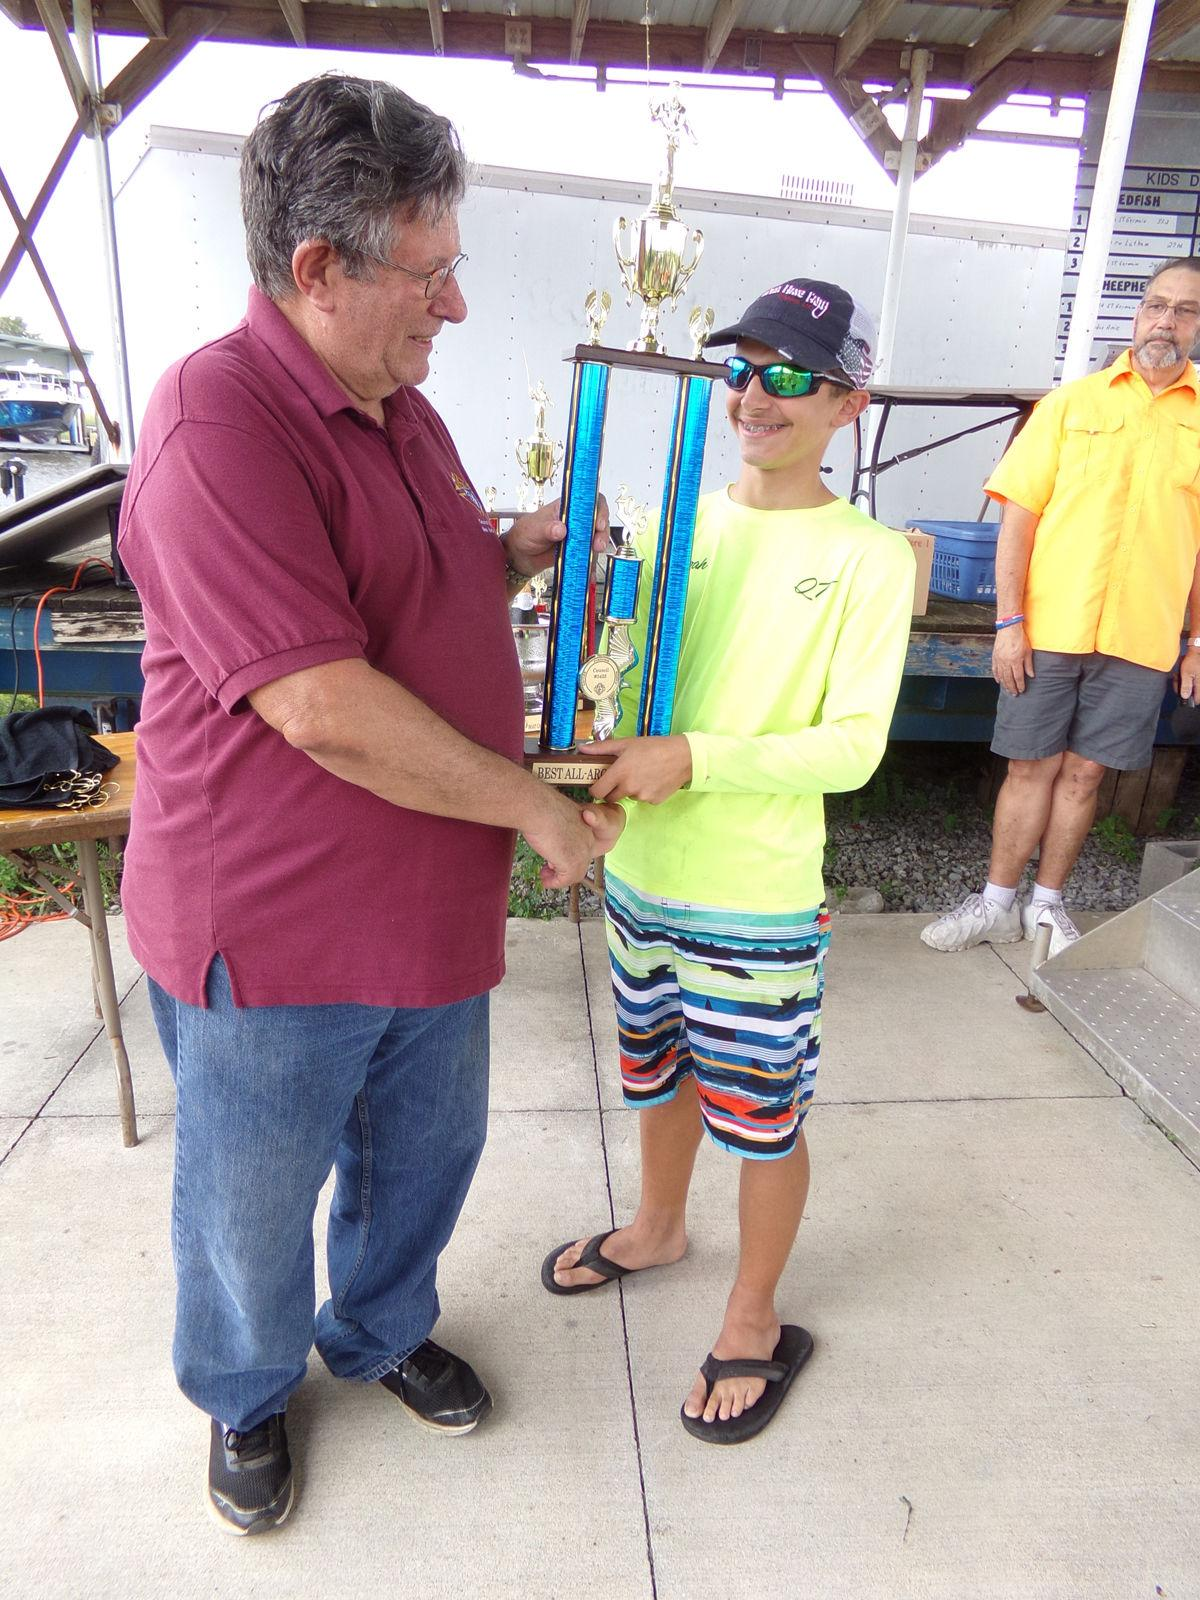 Thinking of family, St. Germain defends Boat Captain title at Kay-Cee Rodeo